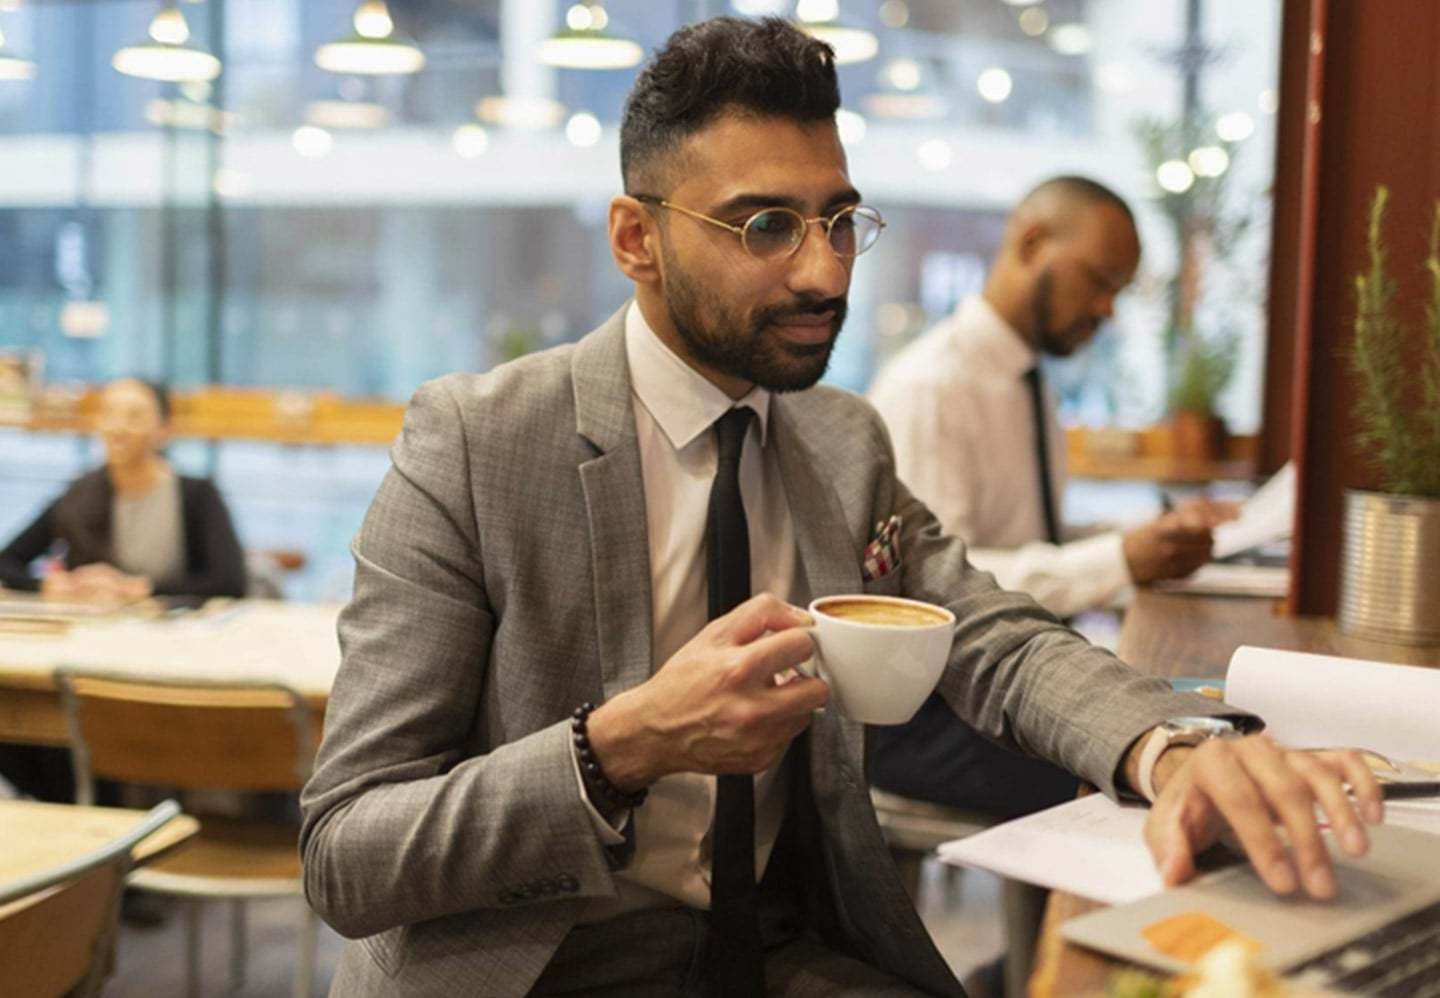 Man in a suit drinking coffee